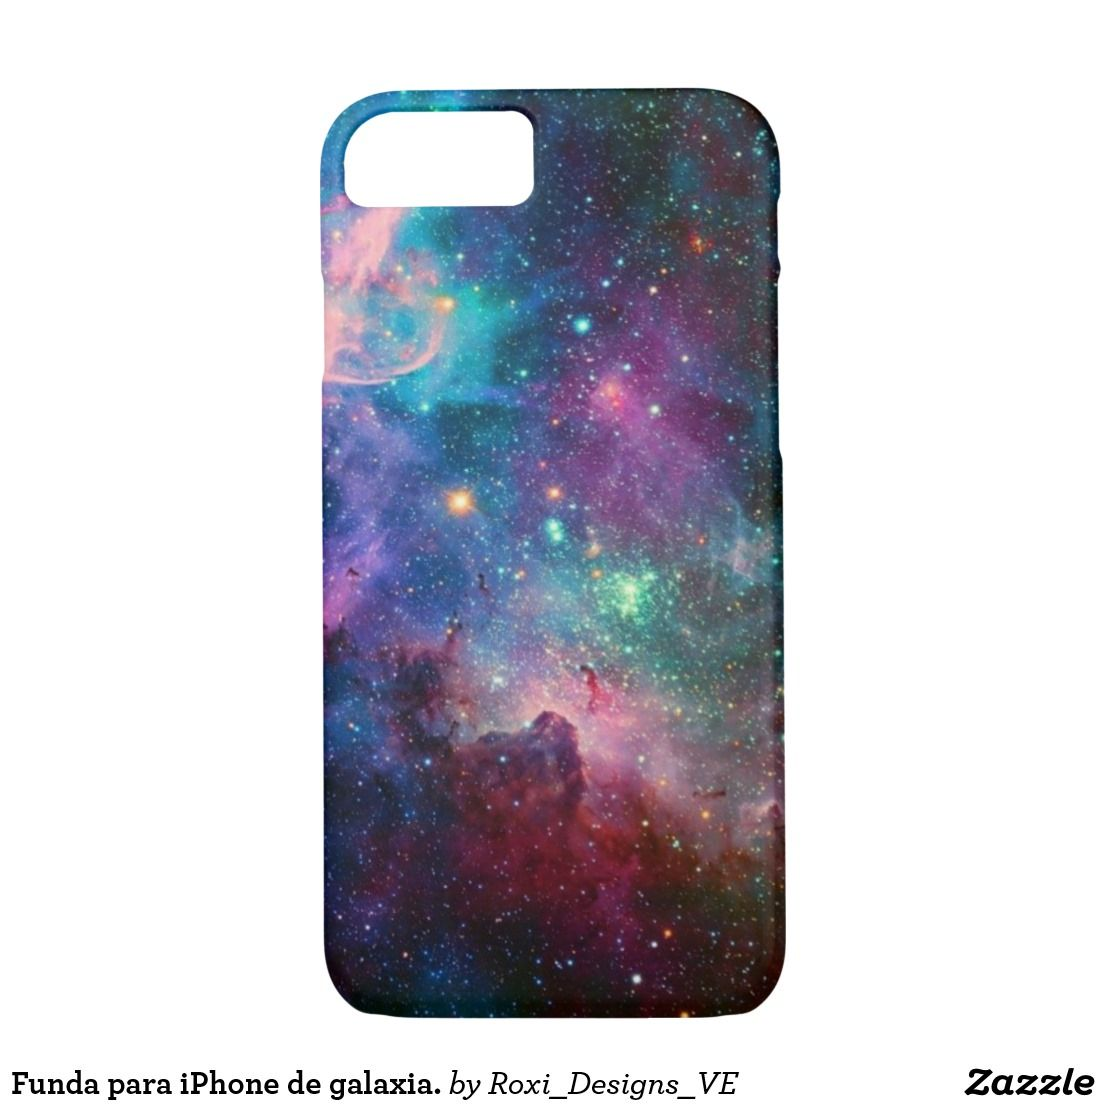 Cover for galaxy iPhone